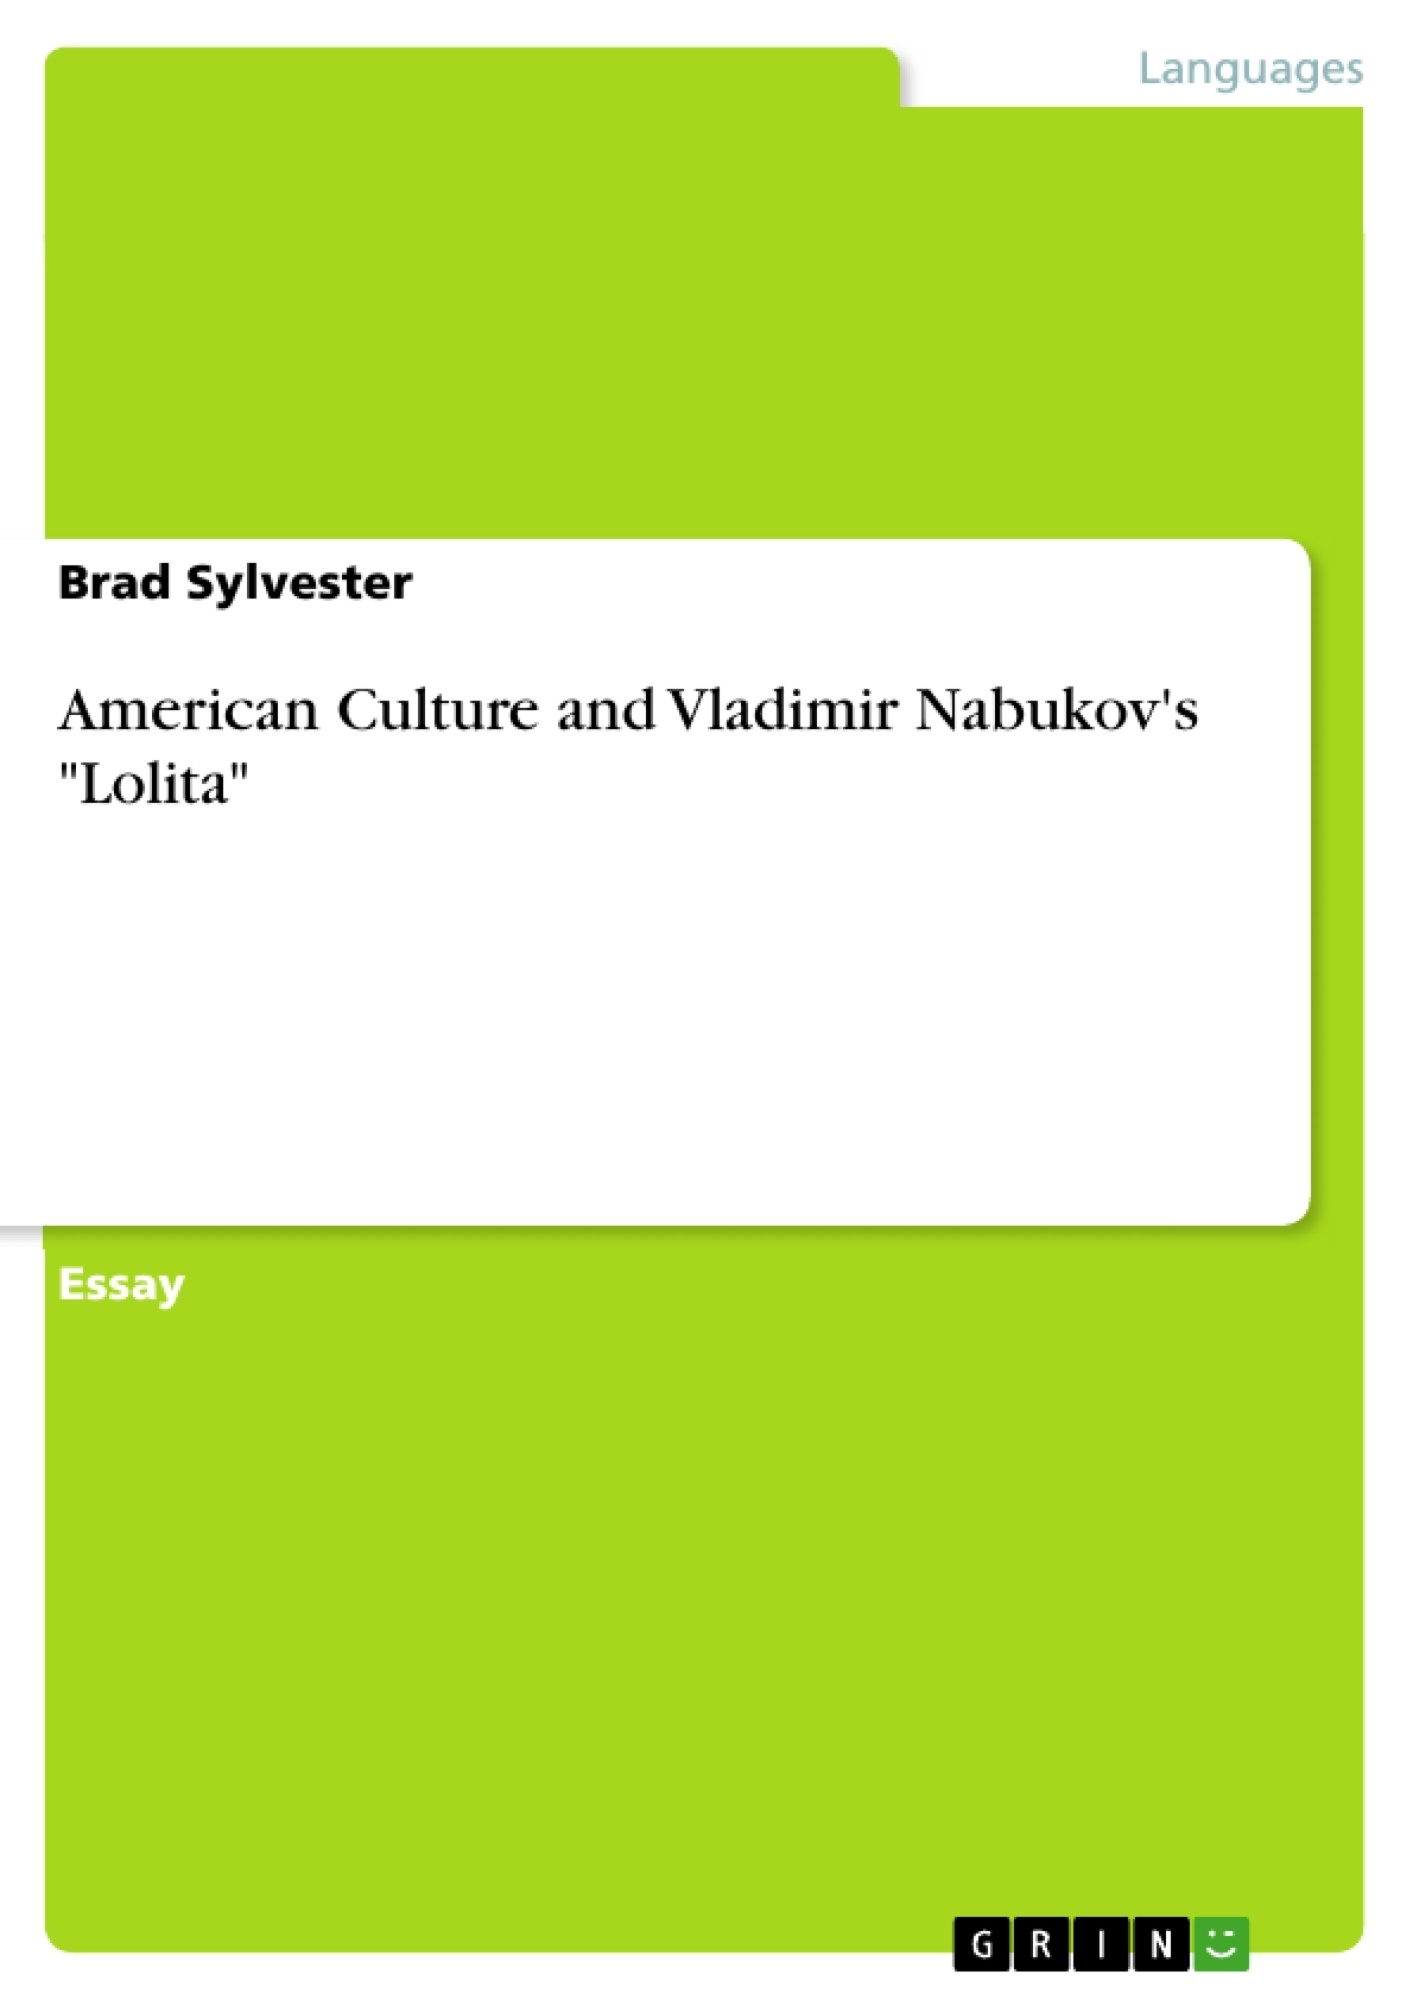 american culture and vladimir nabukov s lolita publish your  upload your own papers earn money and win an iphone x